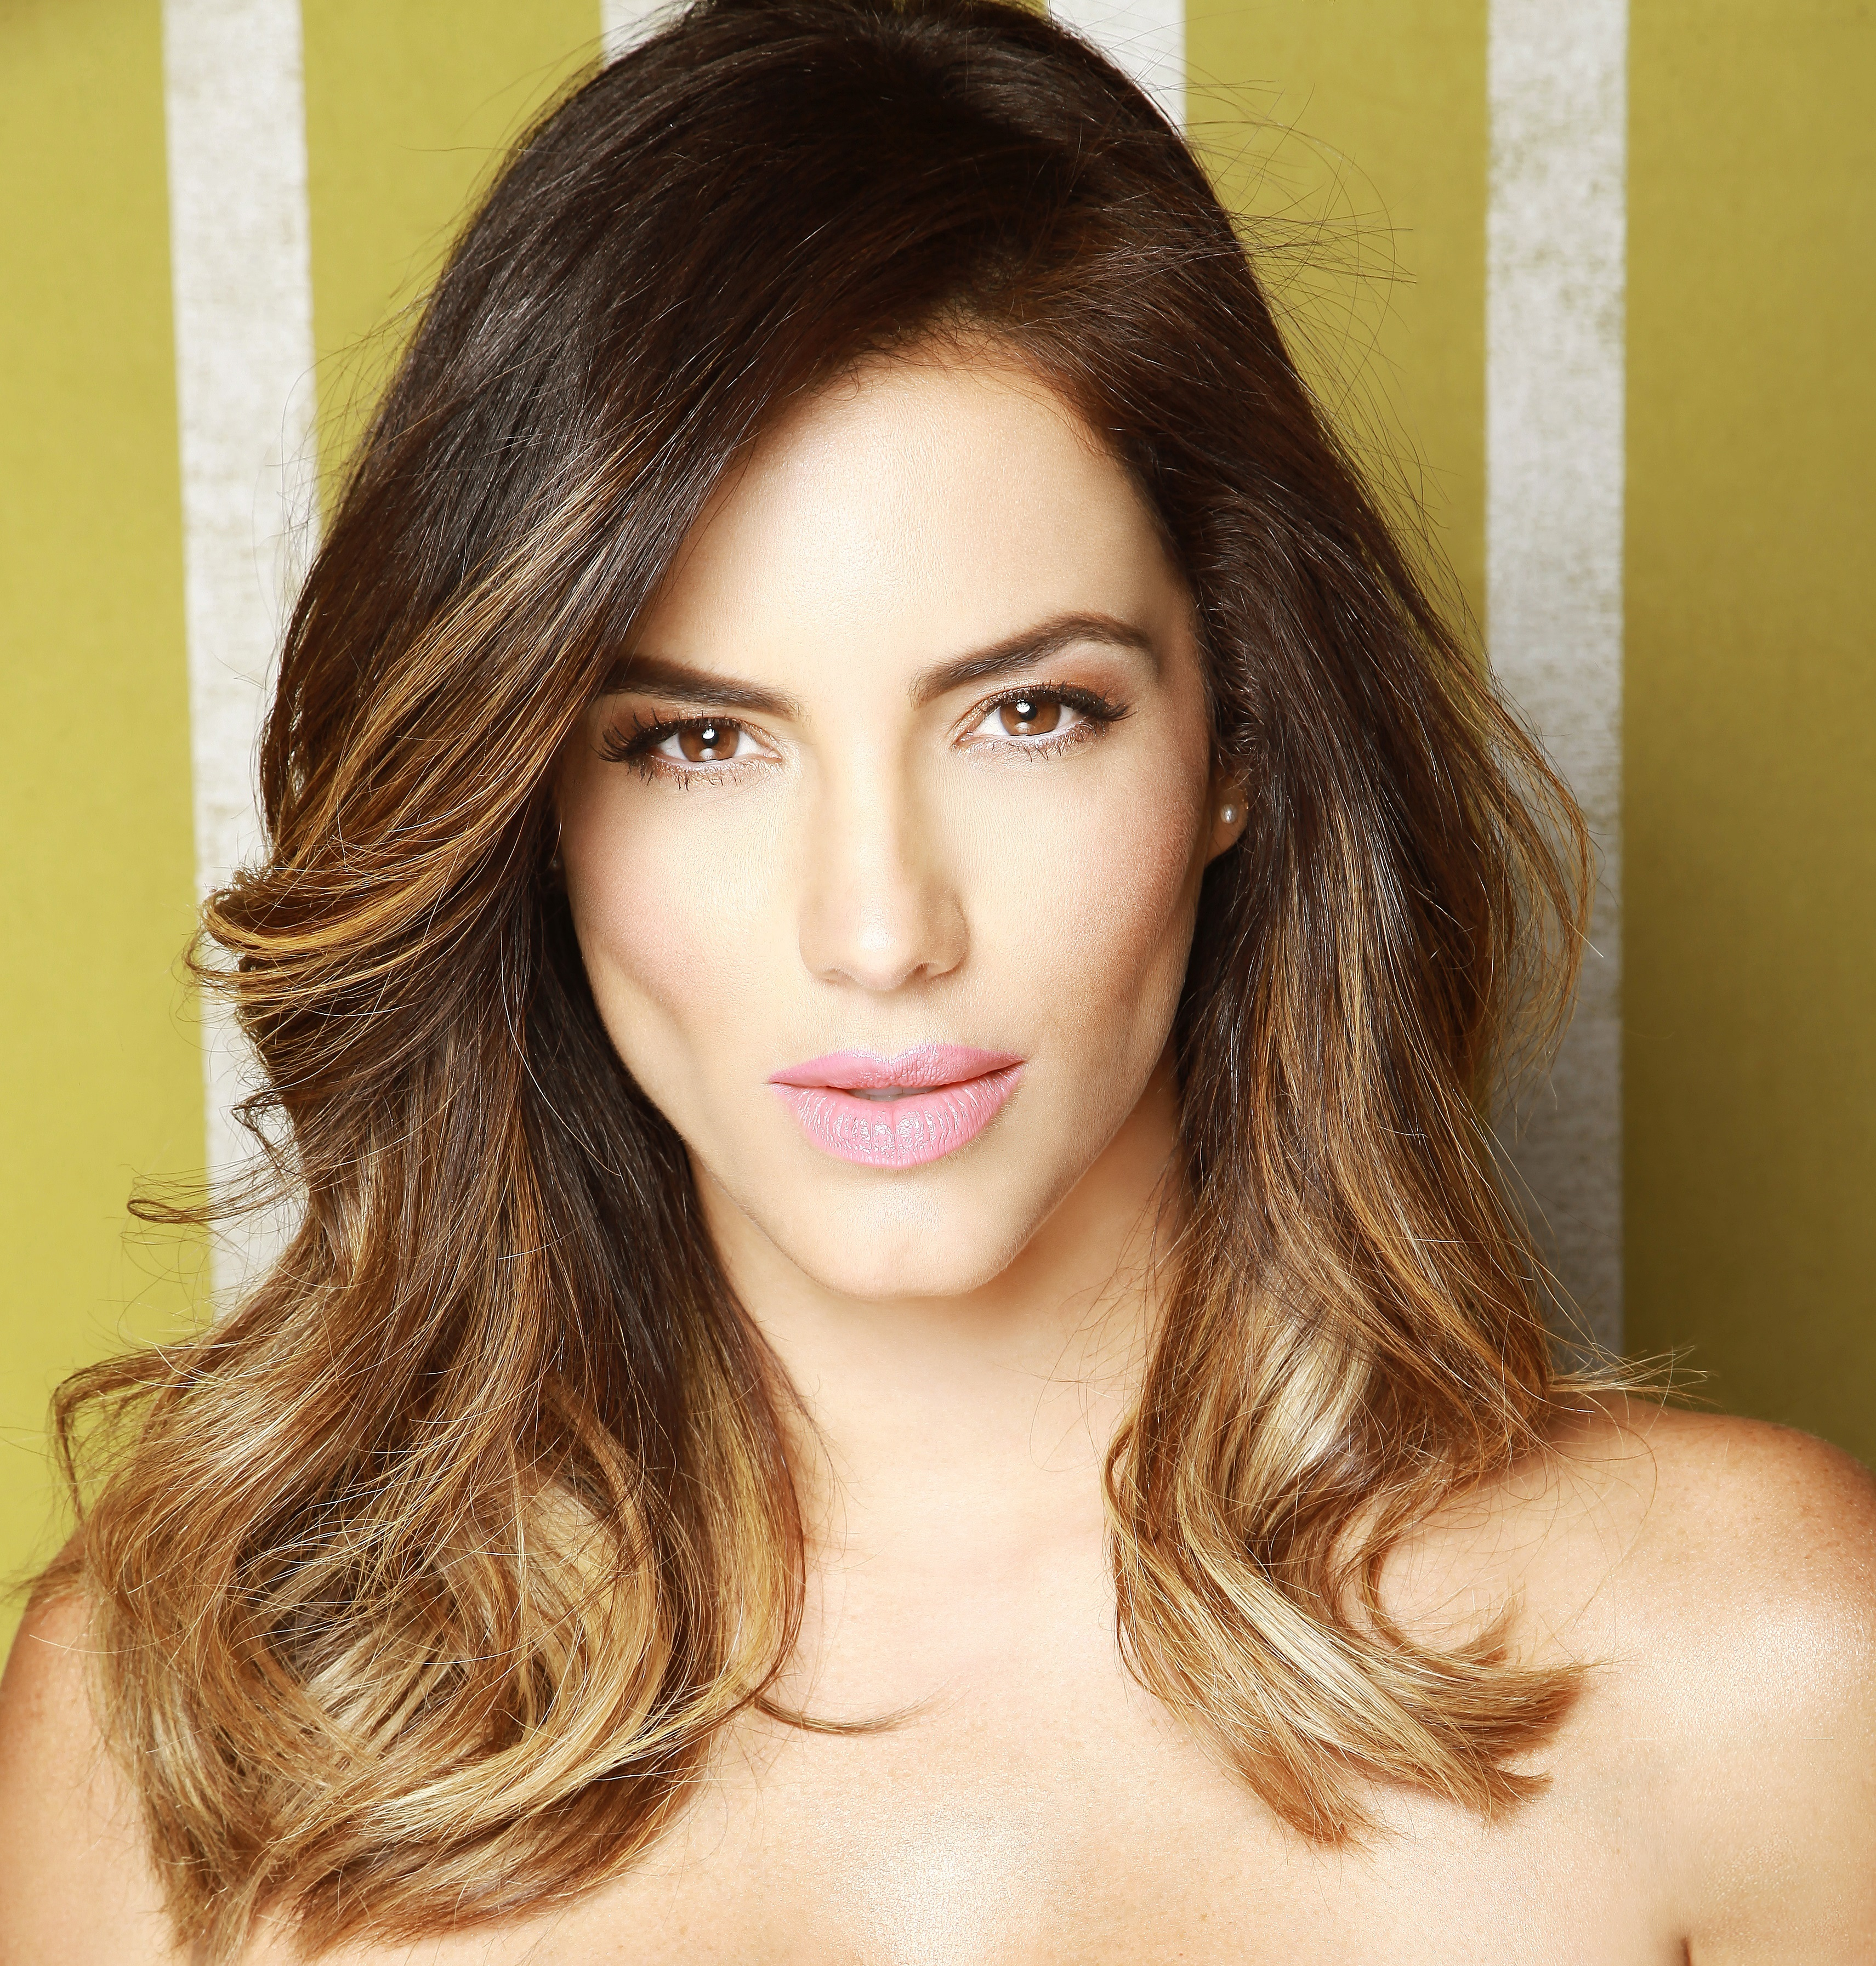 Macys Celebrates Hispanic Heritage Month With Renowned Actress Gaby Espino Business Wire